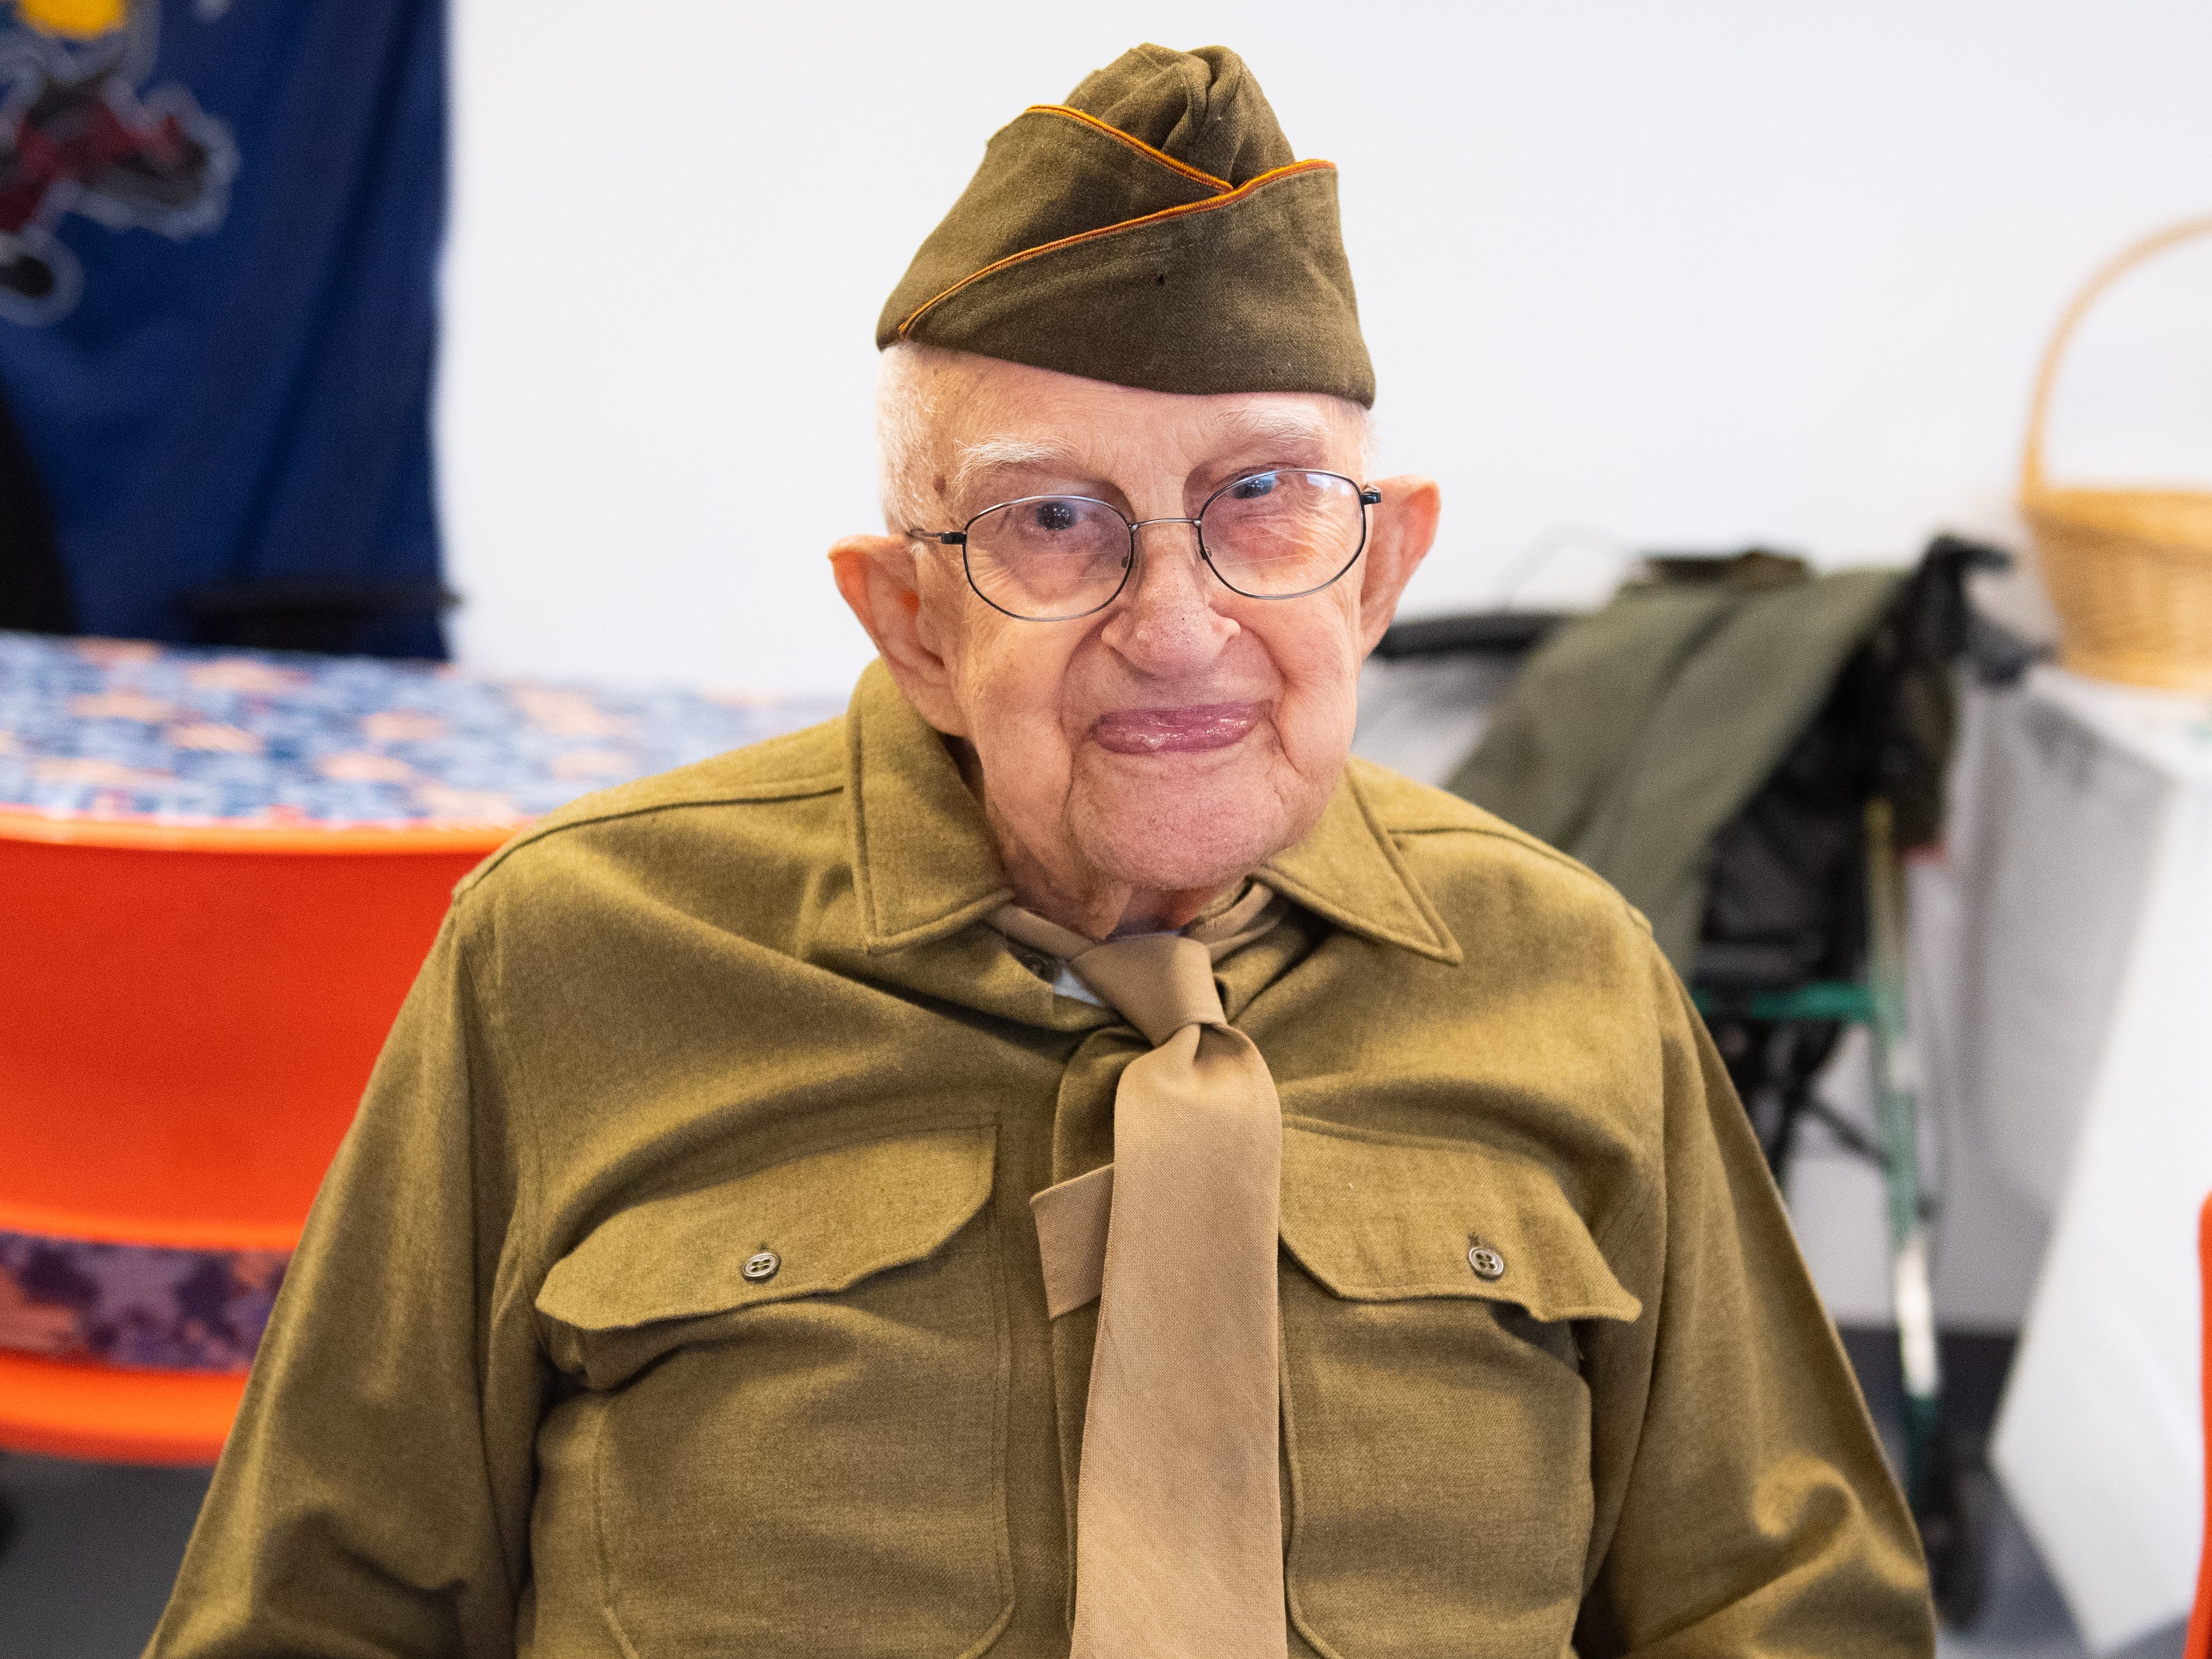 Robert Bush is the oldest veteran in attendance at 101 years old. He served in World War II and even fought in the Battle of the Bulge. He is wearing his military uniform with pride, March 29, 2019.